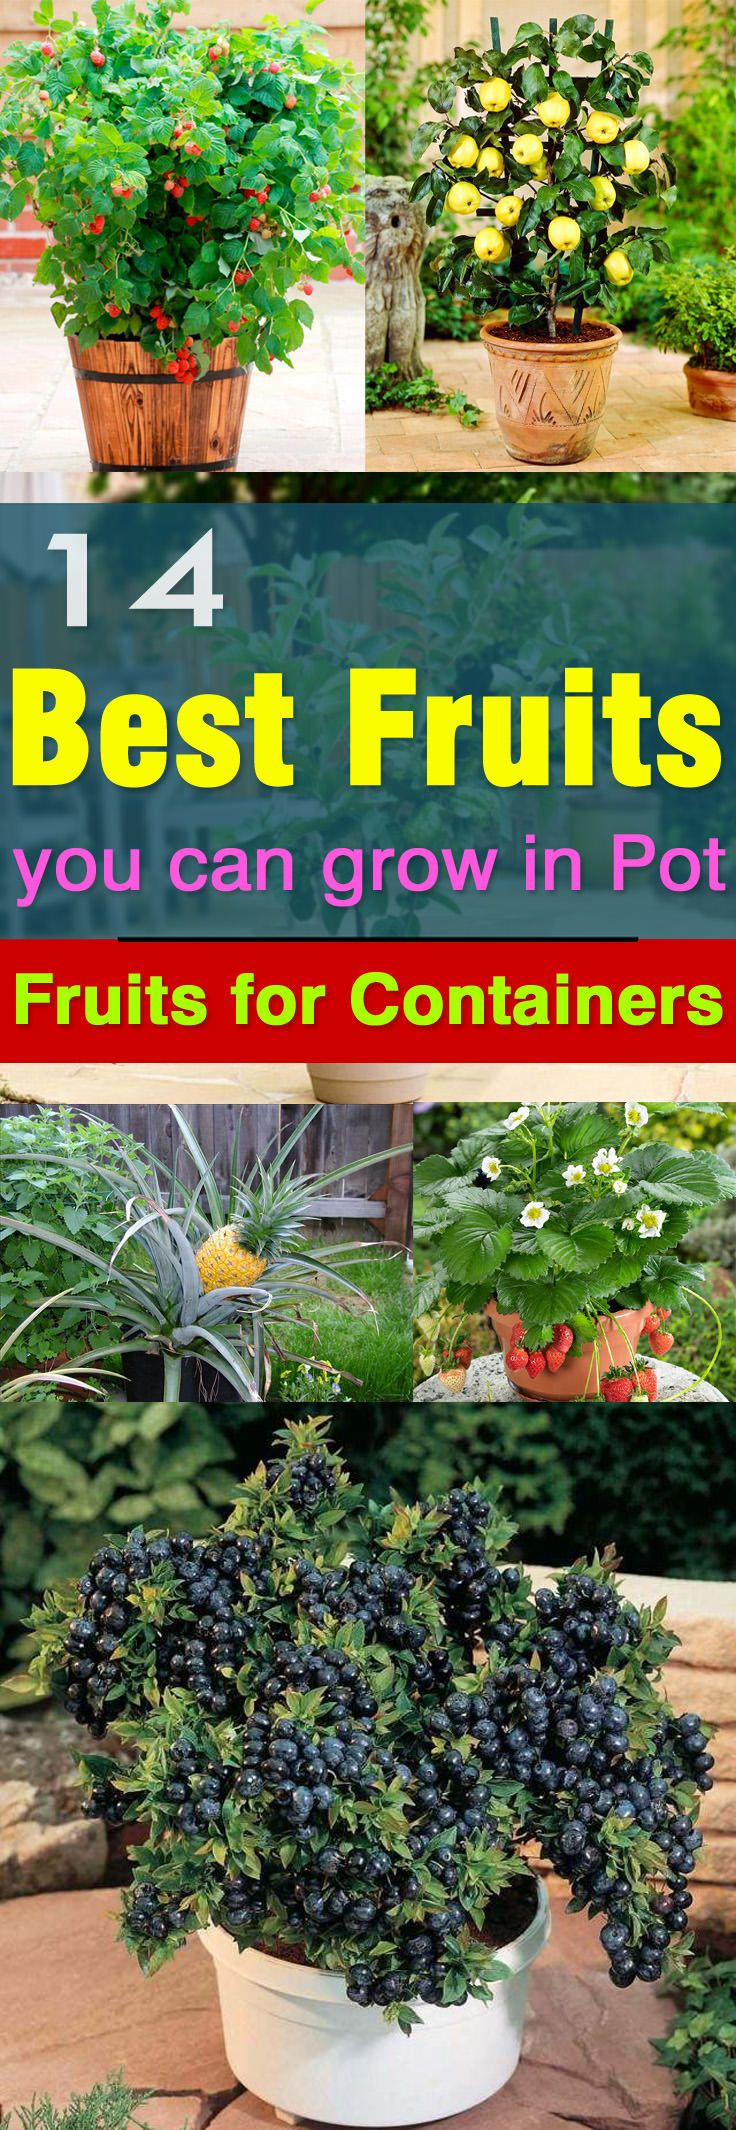 Best Fruits To Grow In Pots Fruits For Containers Plants Indoor Vegetable Gardening Growing Vegetables